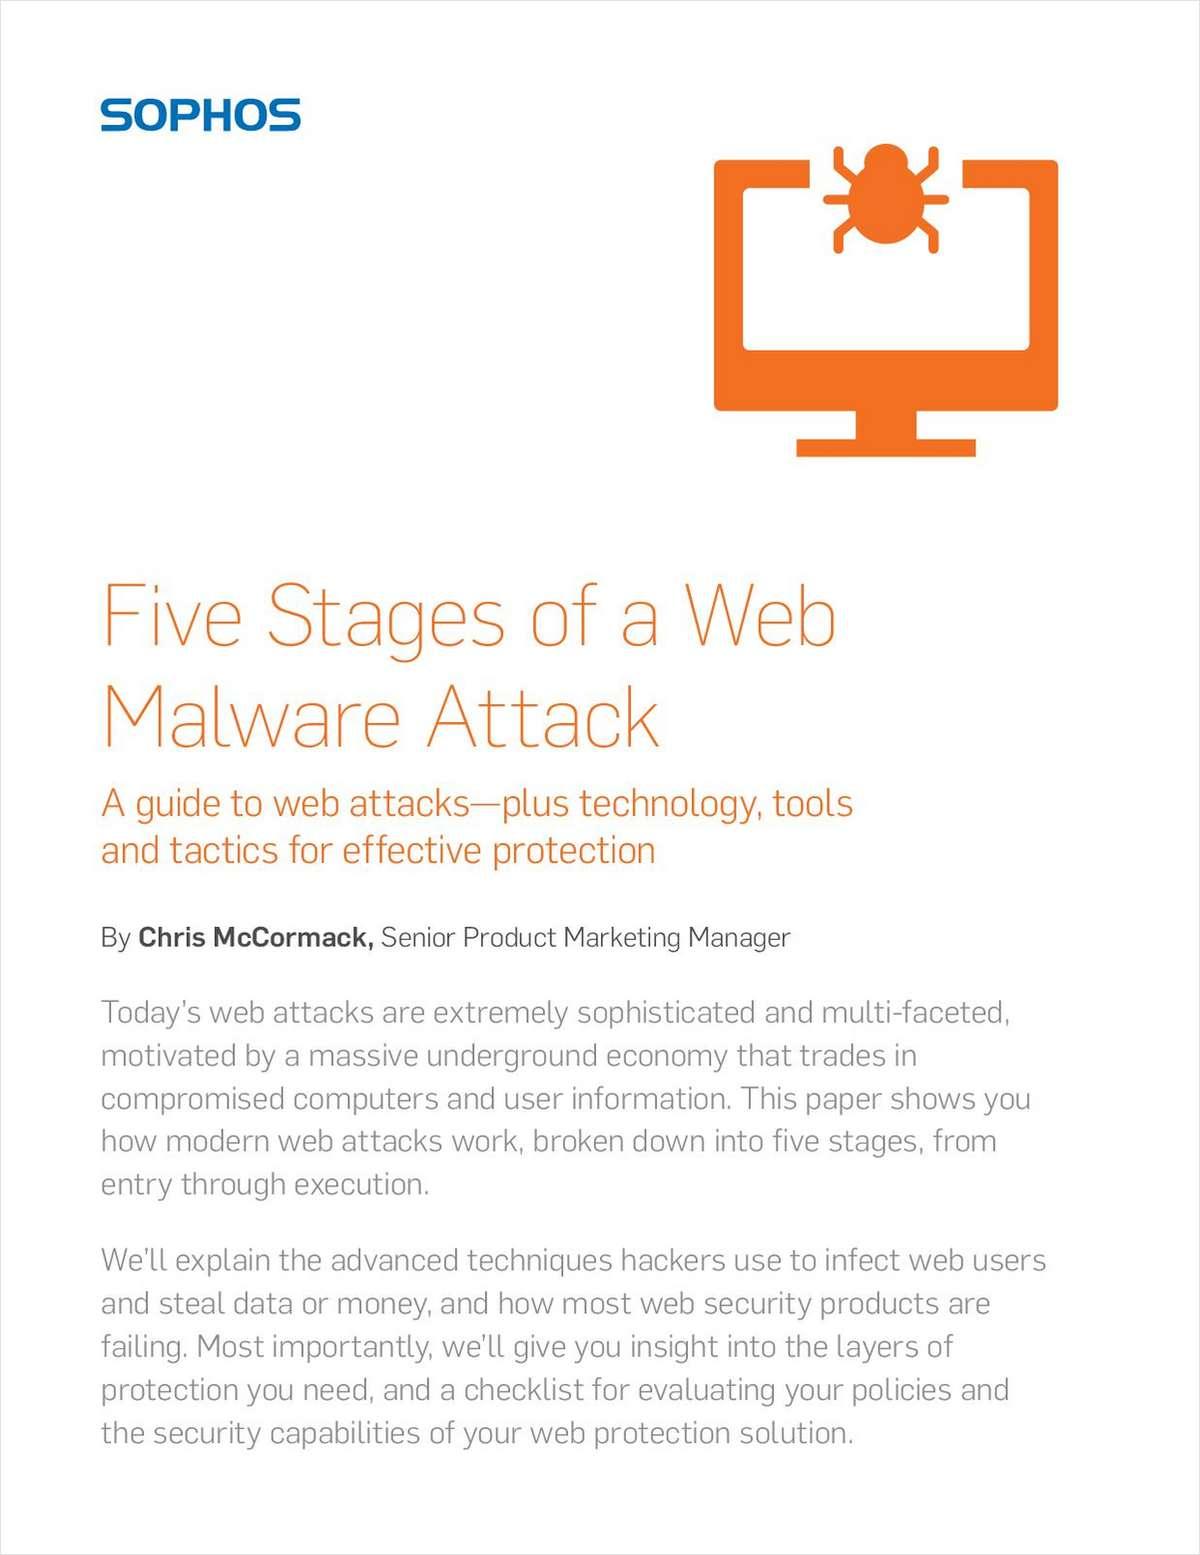 Five Stages of a Web Malware Attack